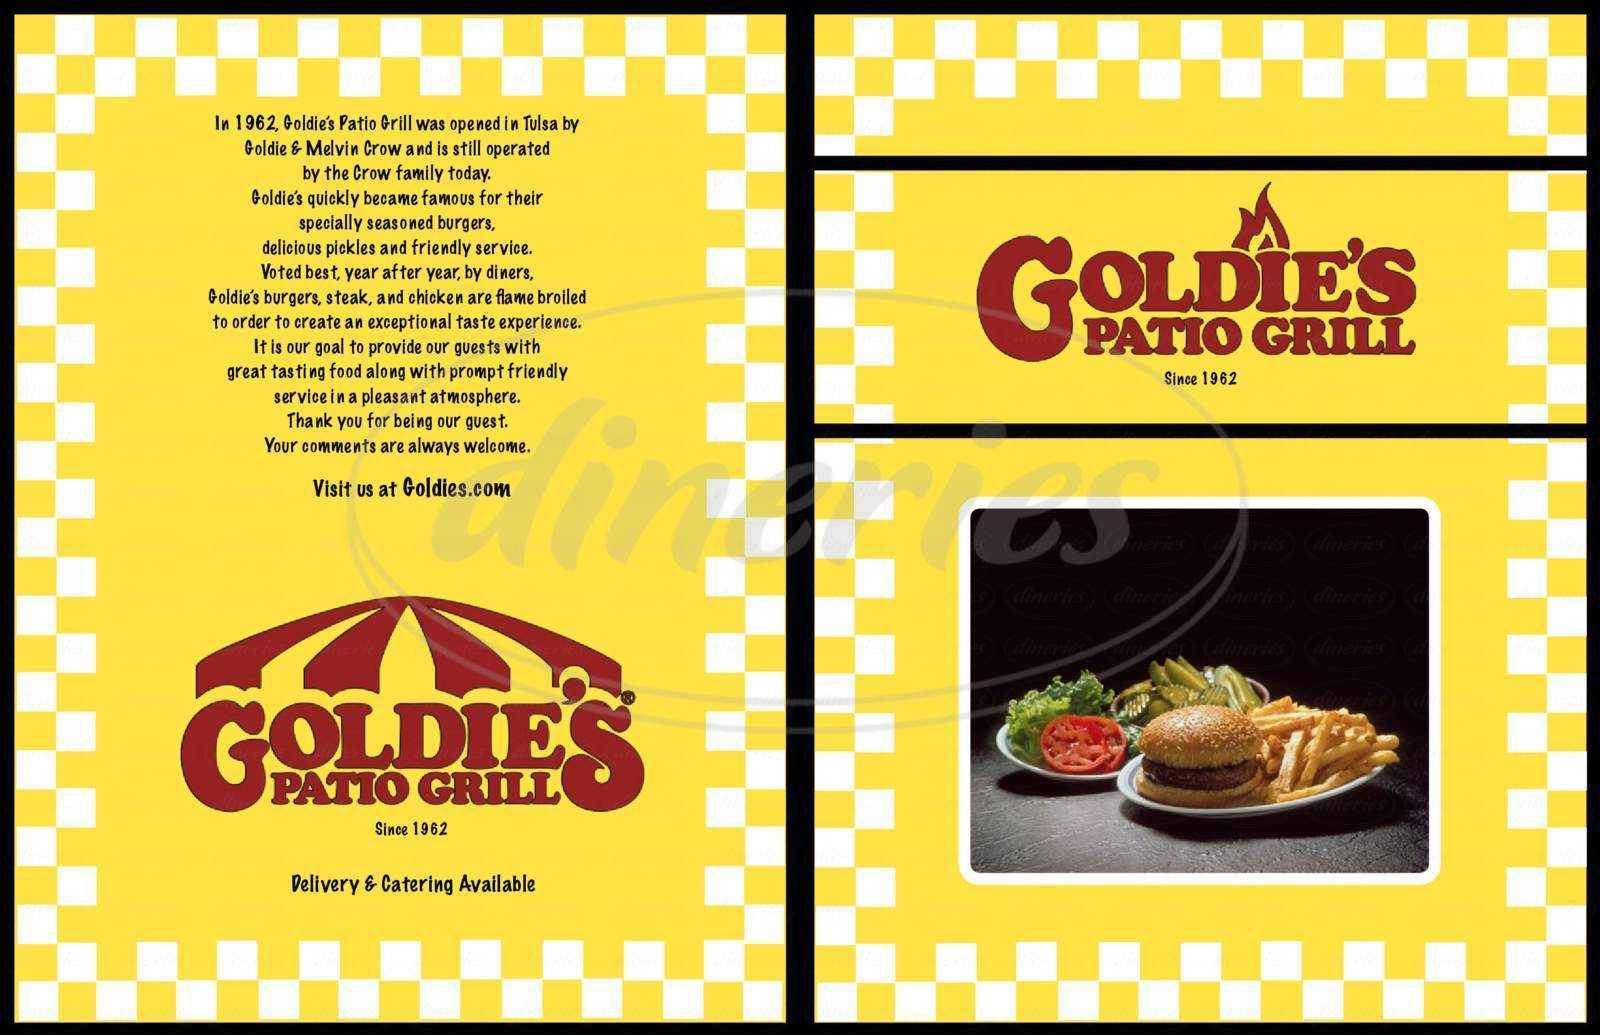 menu for Goldie's Patio Grill